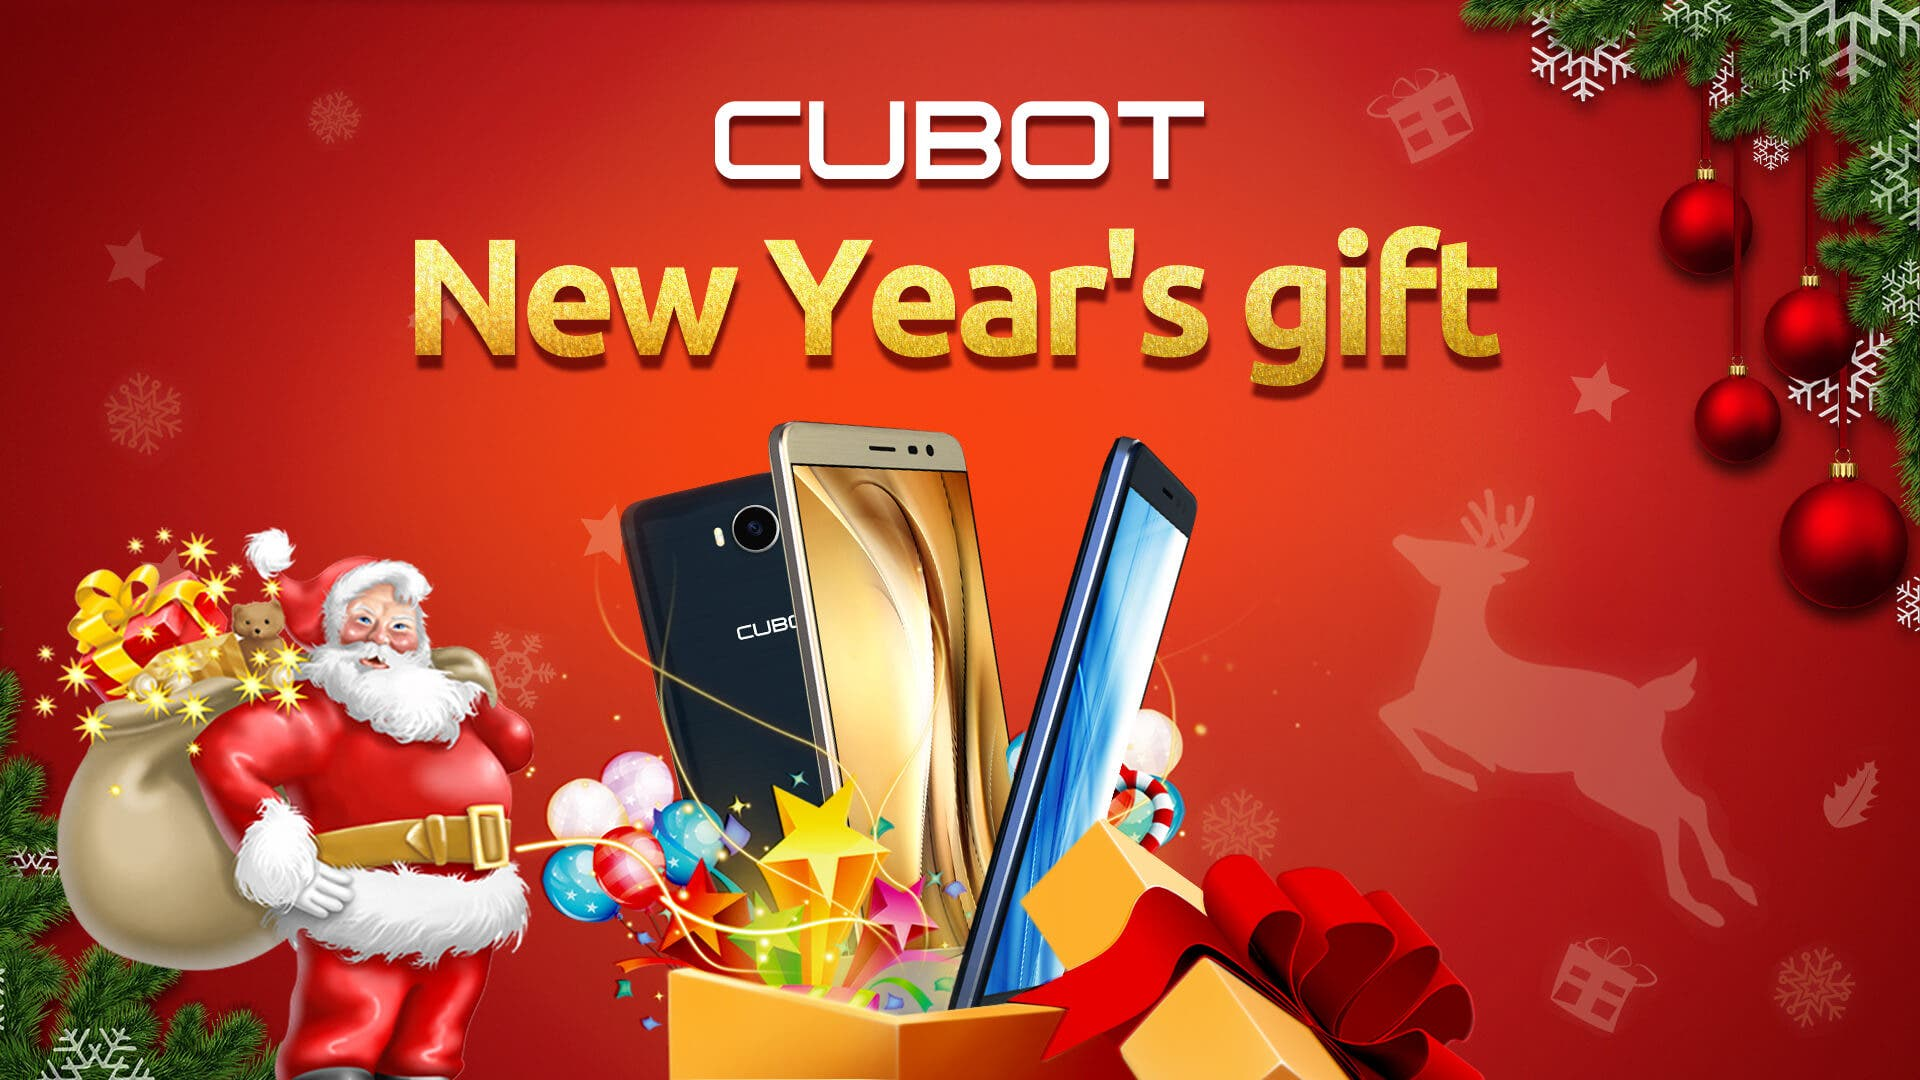 Cubot giveaway